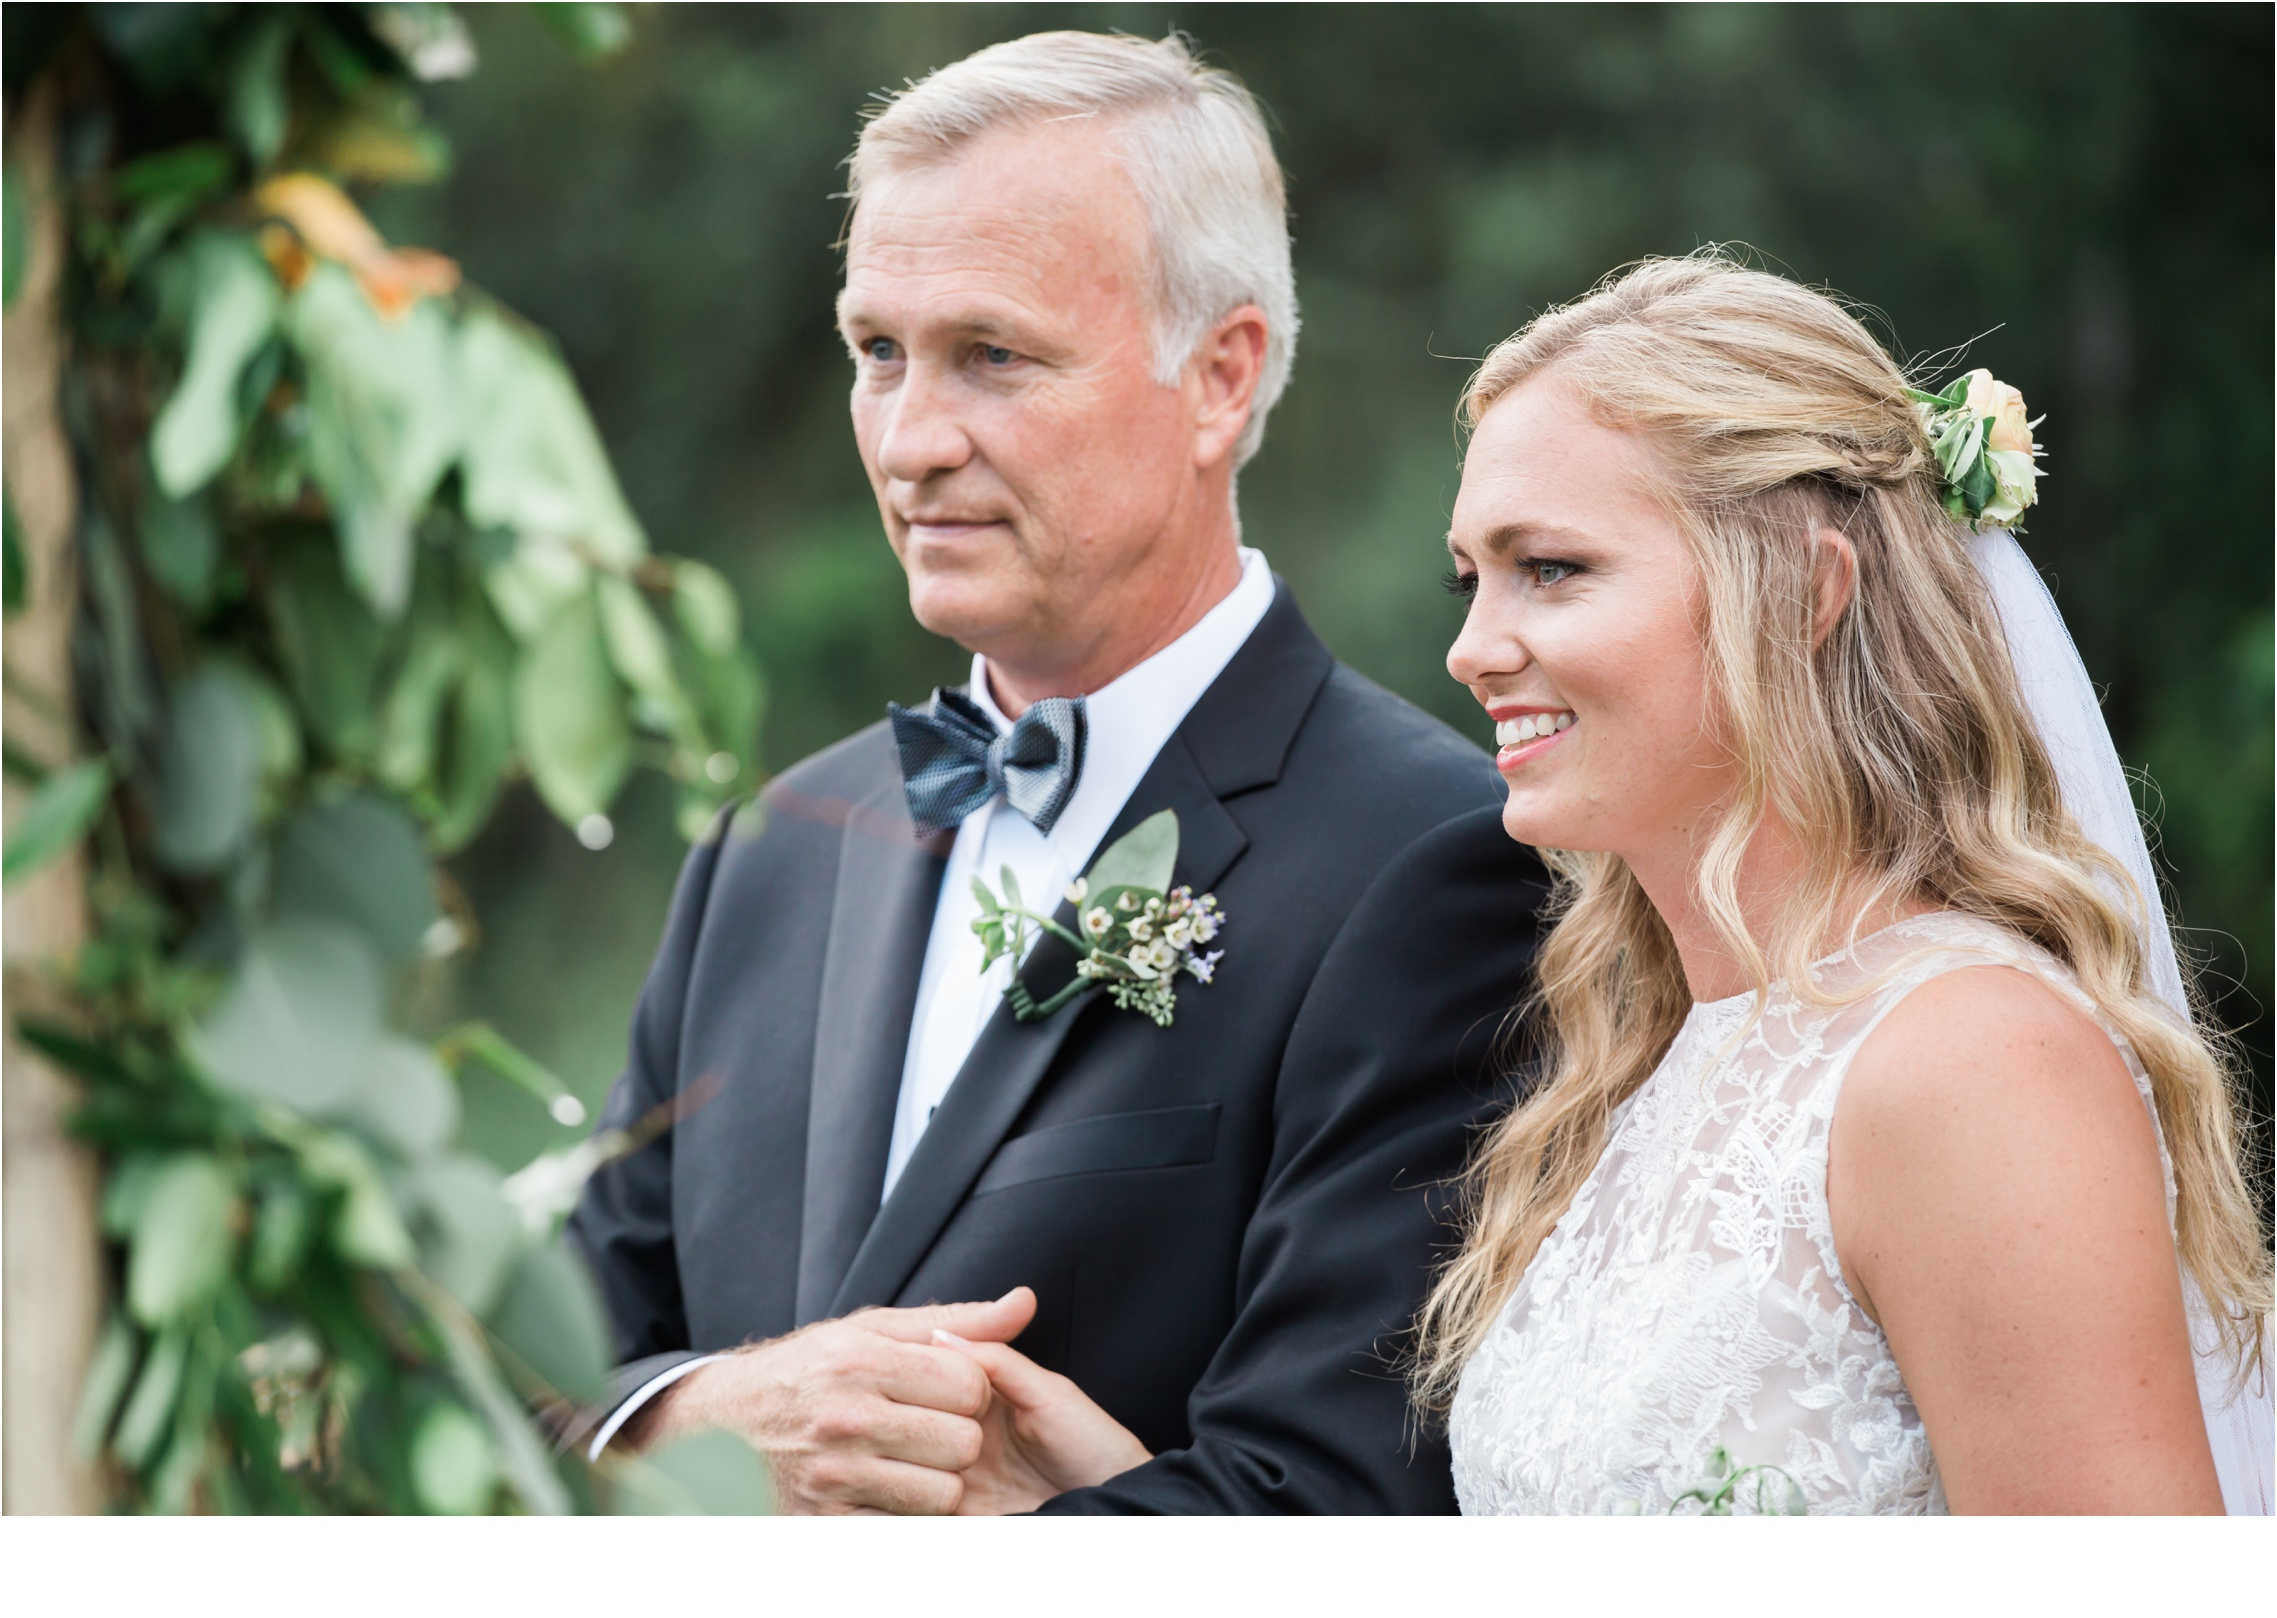 Rainey_Gregg_Photography_St._Simons_Island_Georgia_California_Wedding_Portrait_Photography_0072.jpg